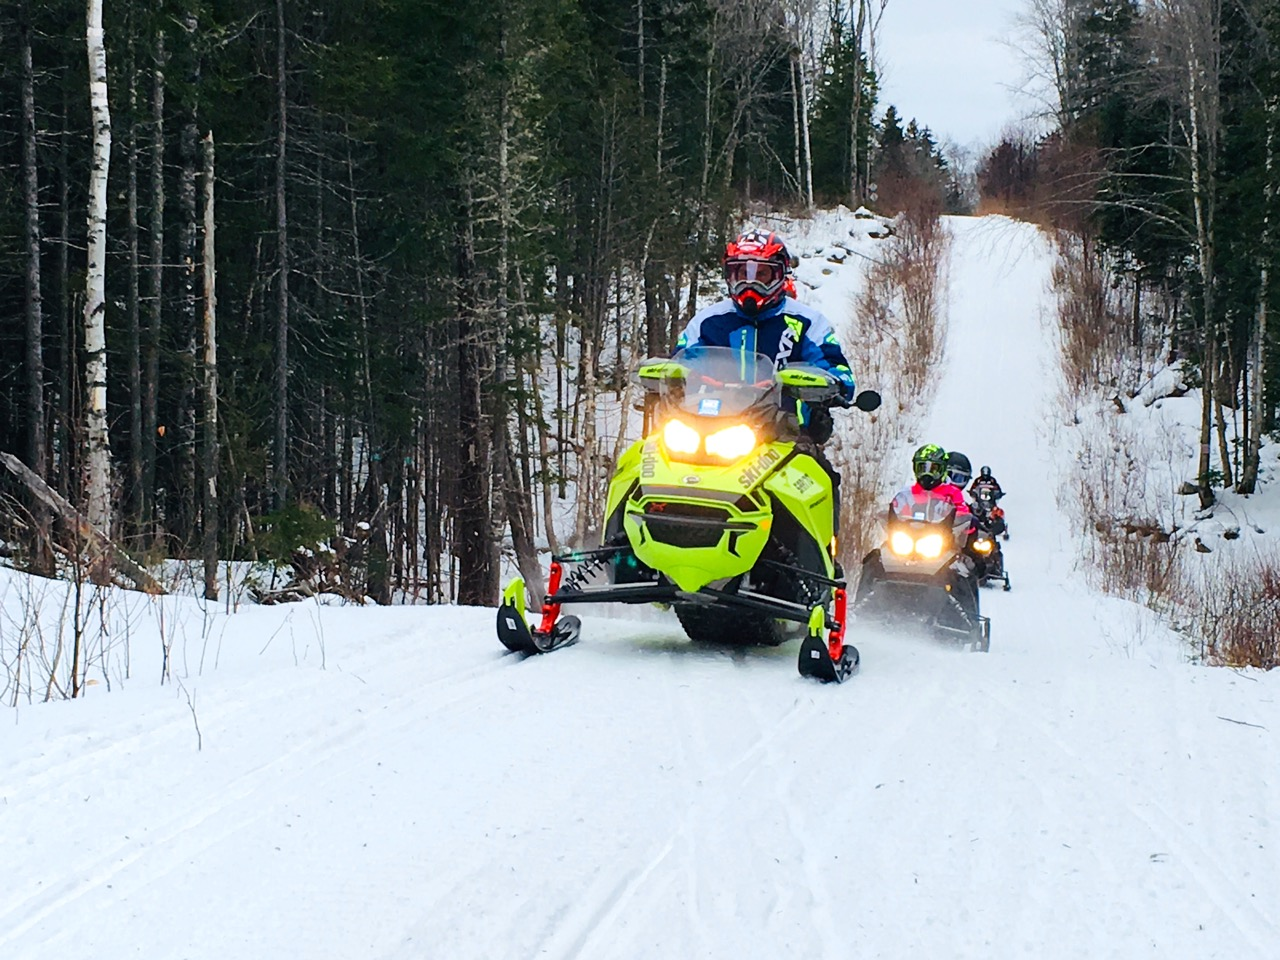 Will snowmobile dealers have sleds like this available this fall?